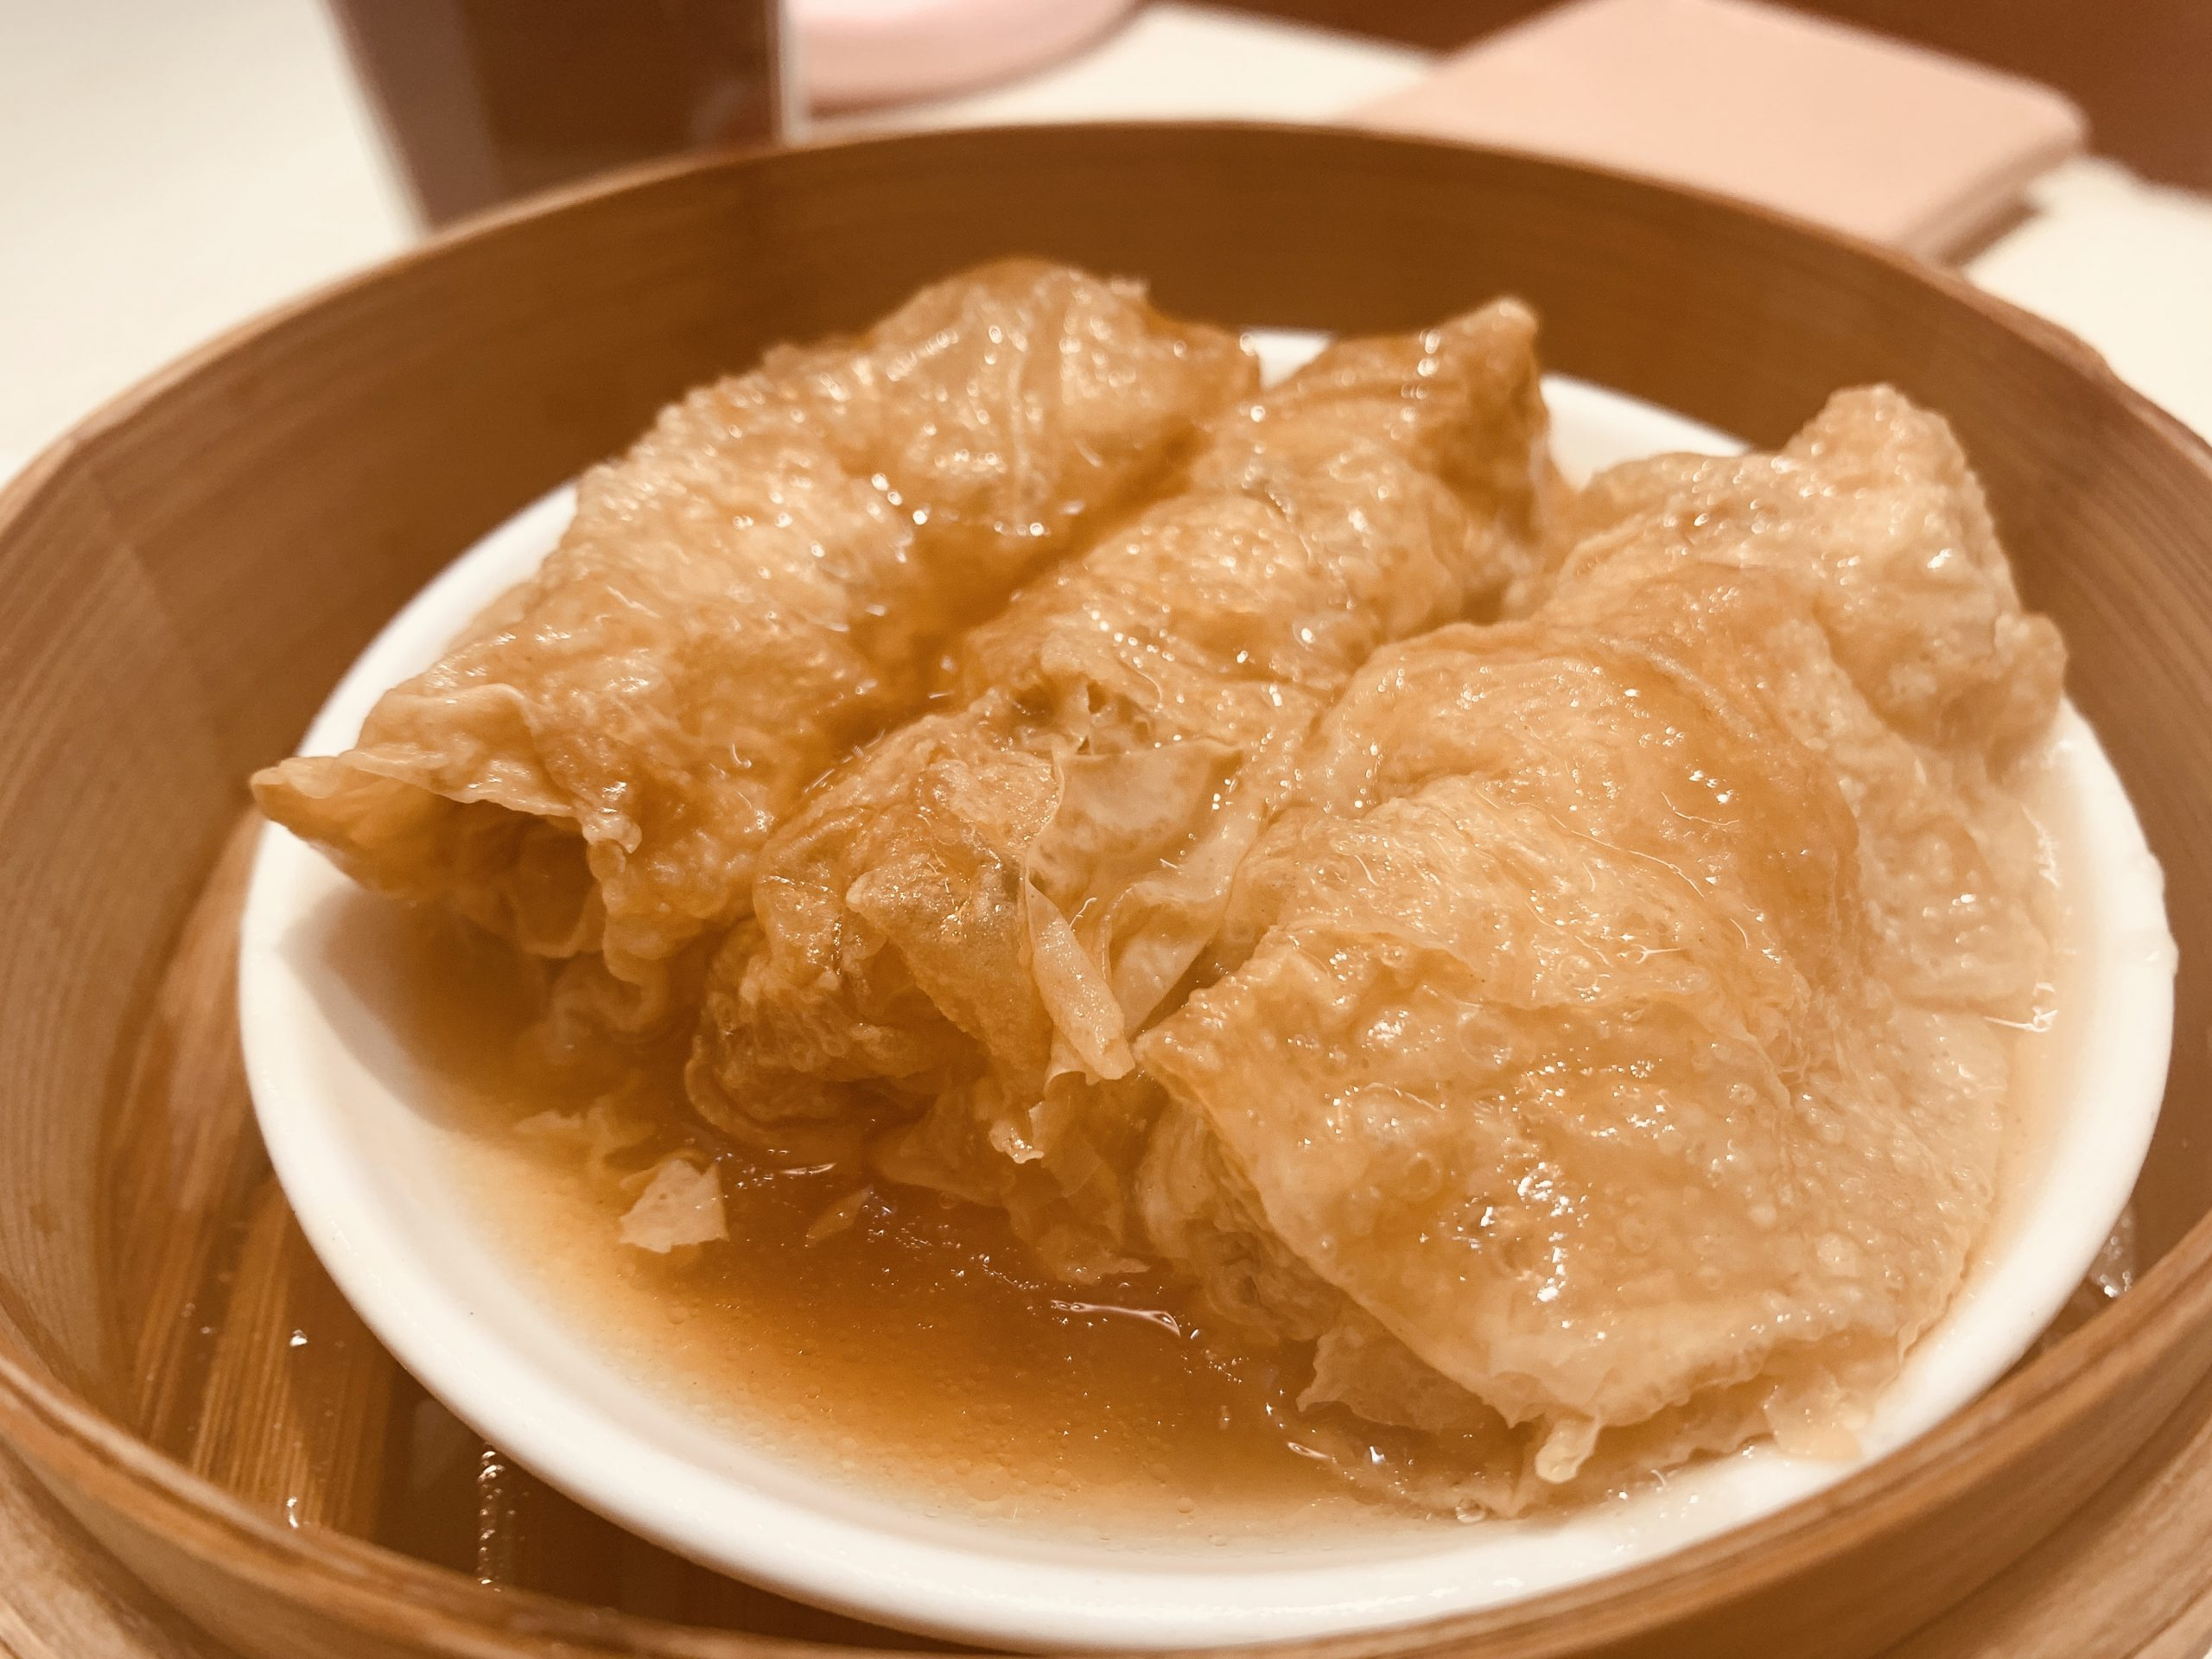 Treasures Yi Dian Xin - Steamed Beancurd Skin Roll with Oyster Sauce